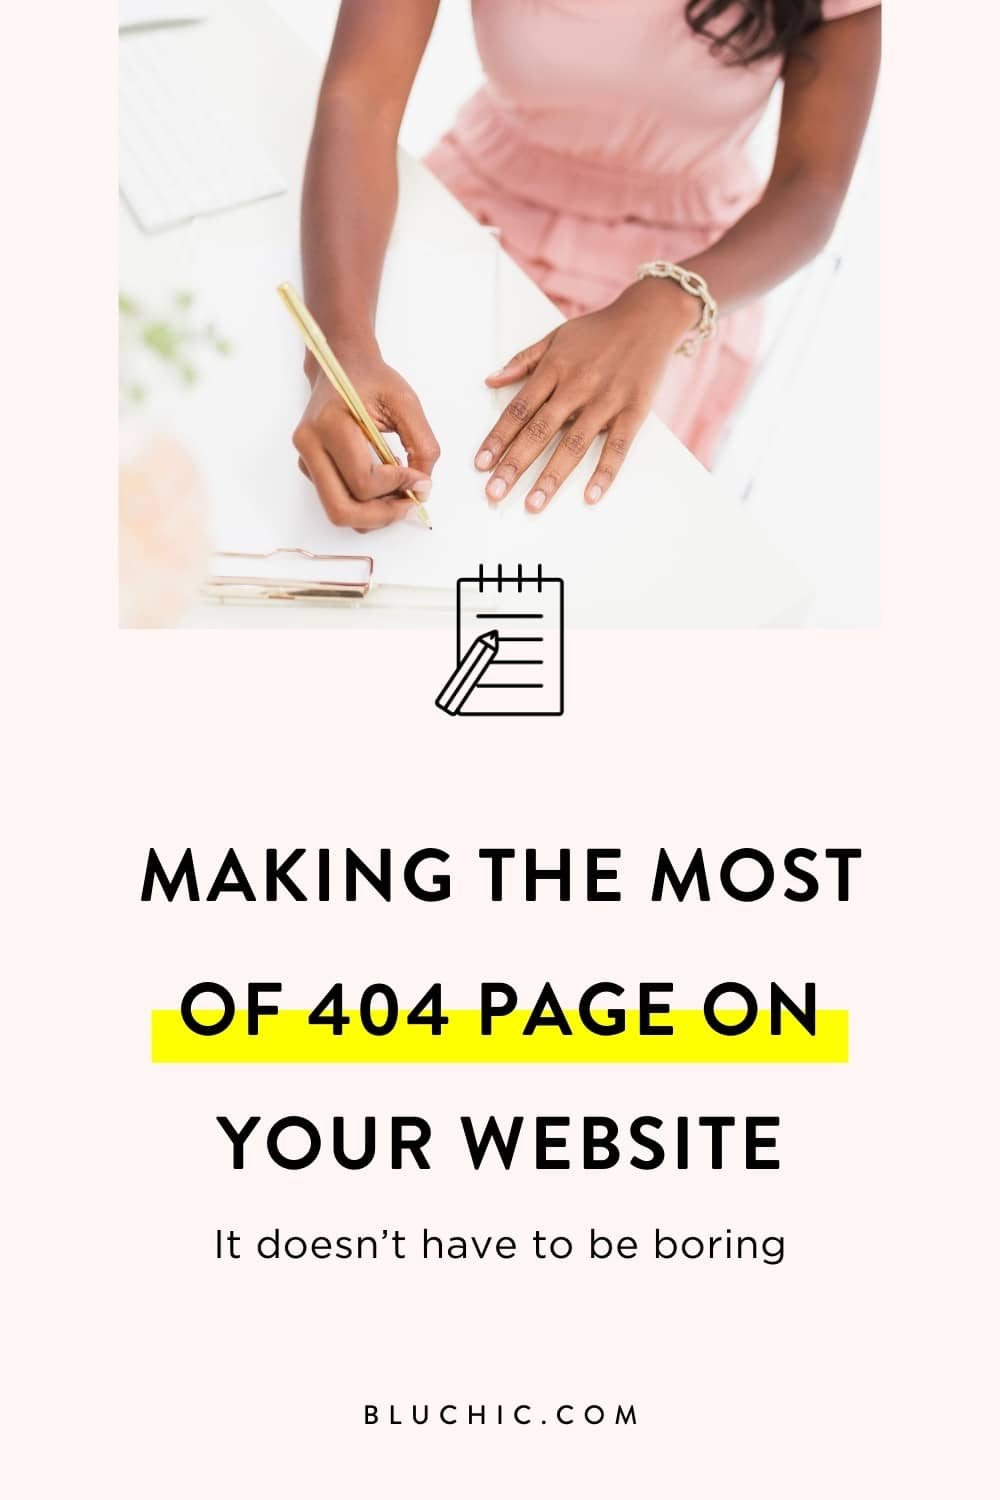 Making The Most Of Your 404 Page | People can land on a 404 page because of dead links or because of typing in a URL incorrectly. Find out ways to make the most of your 404 page!